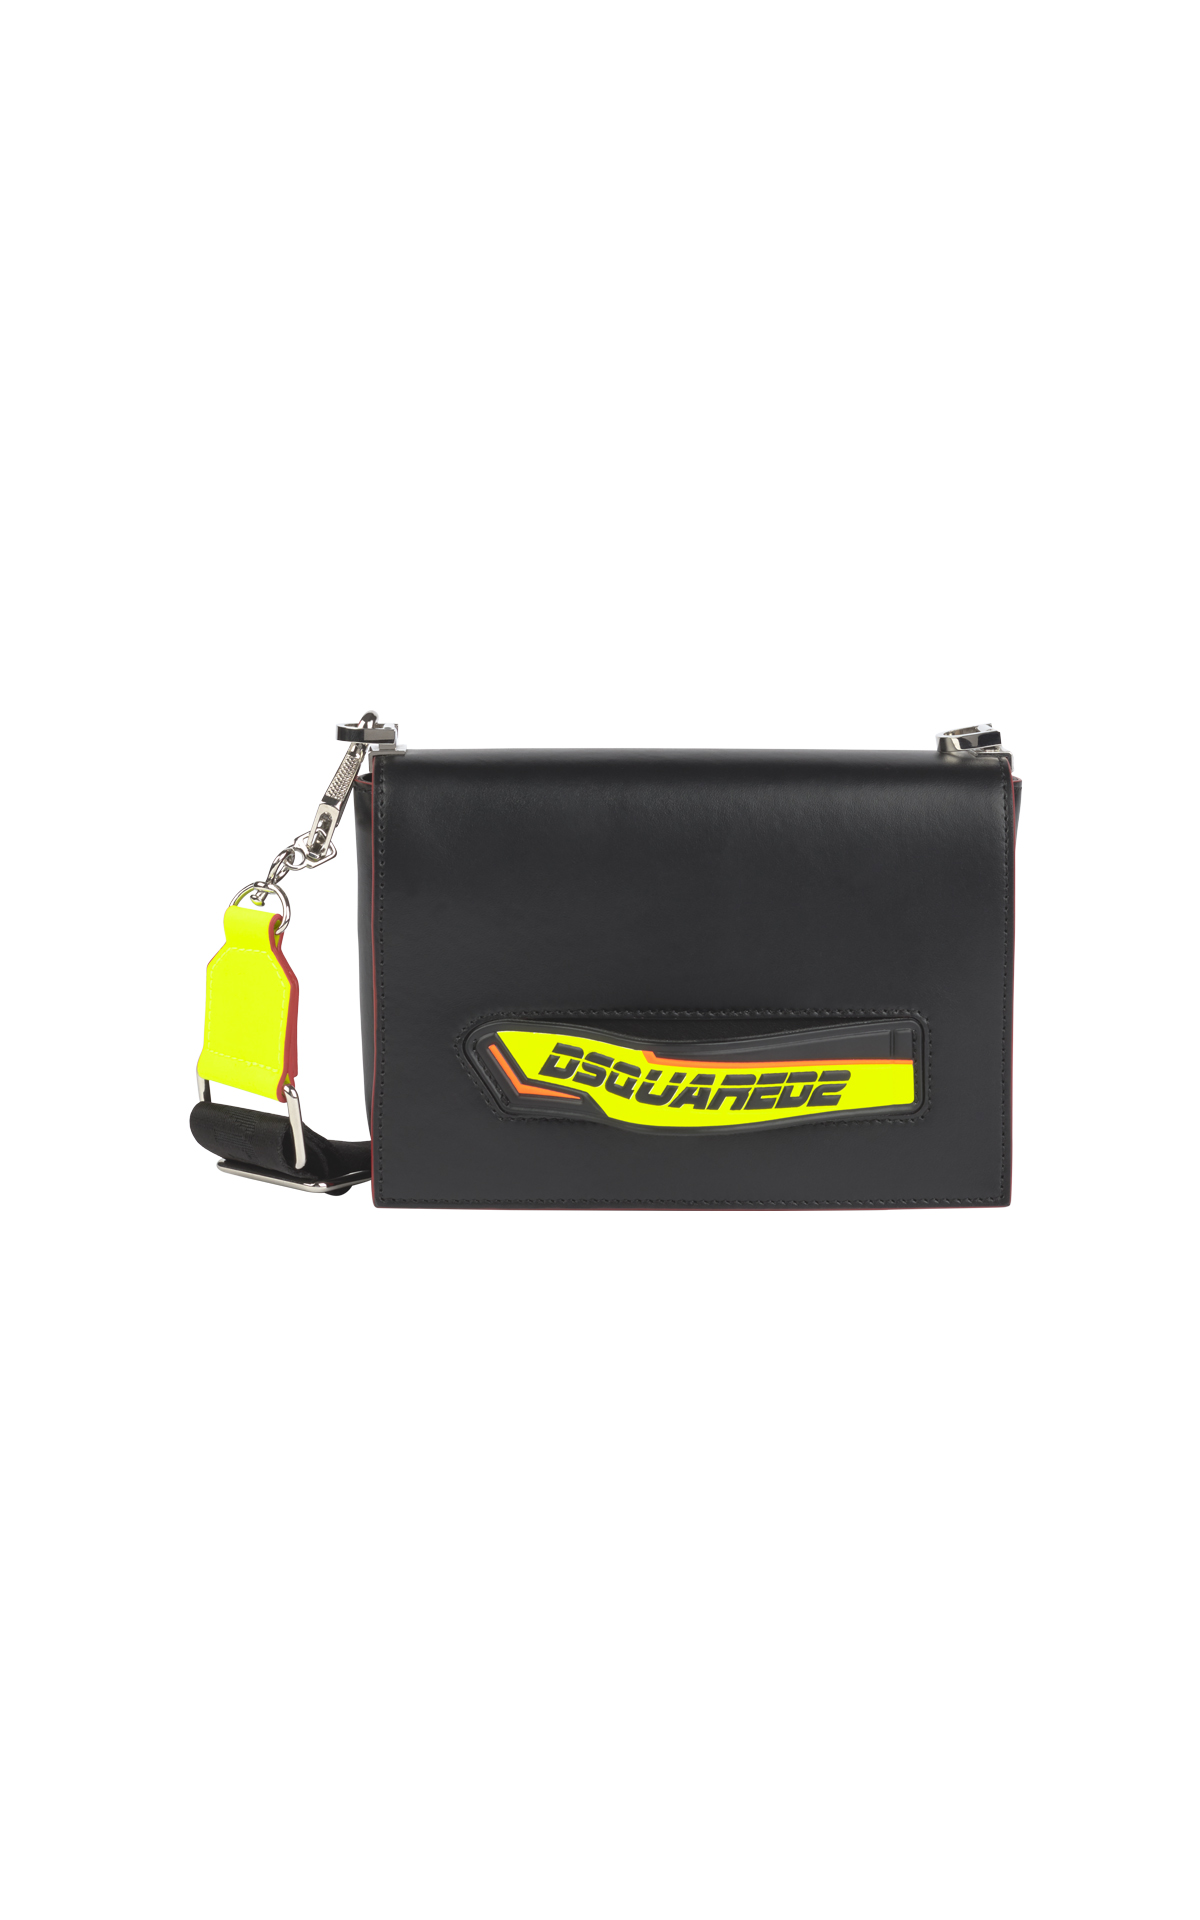 Black and phosphorite bag Dsquared2